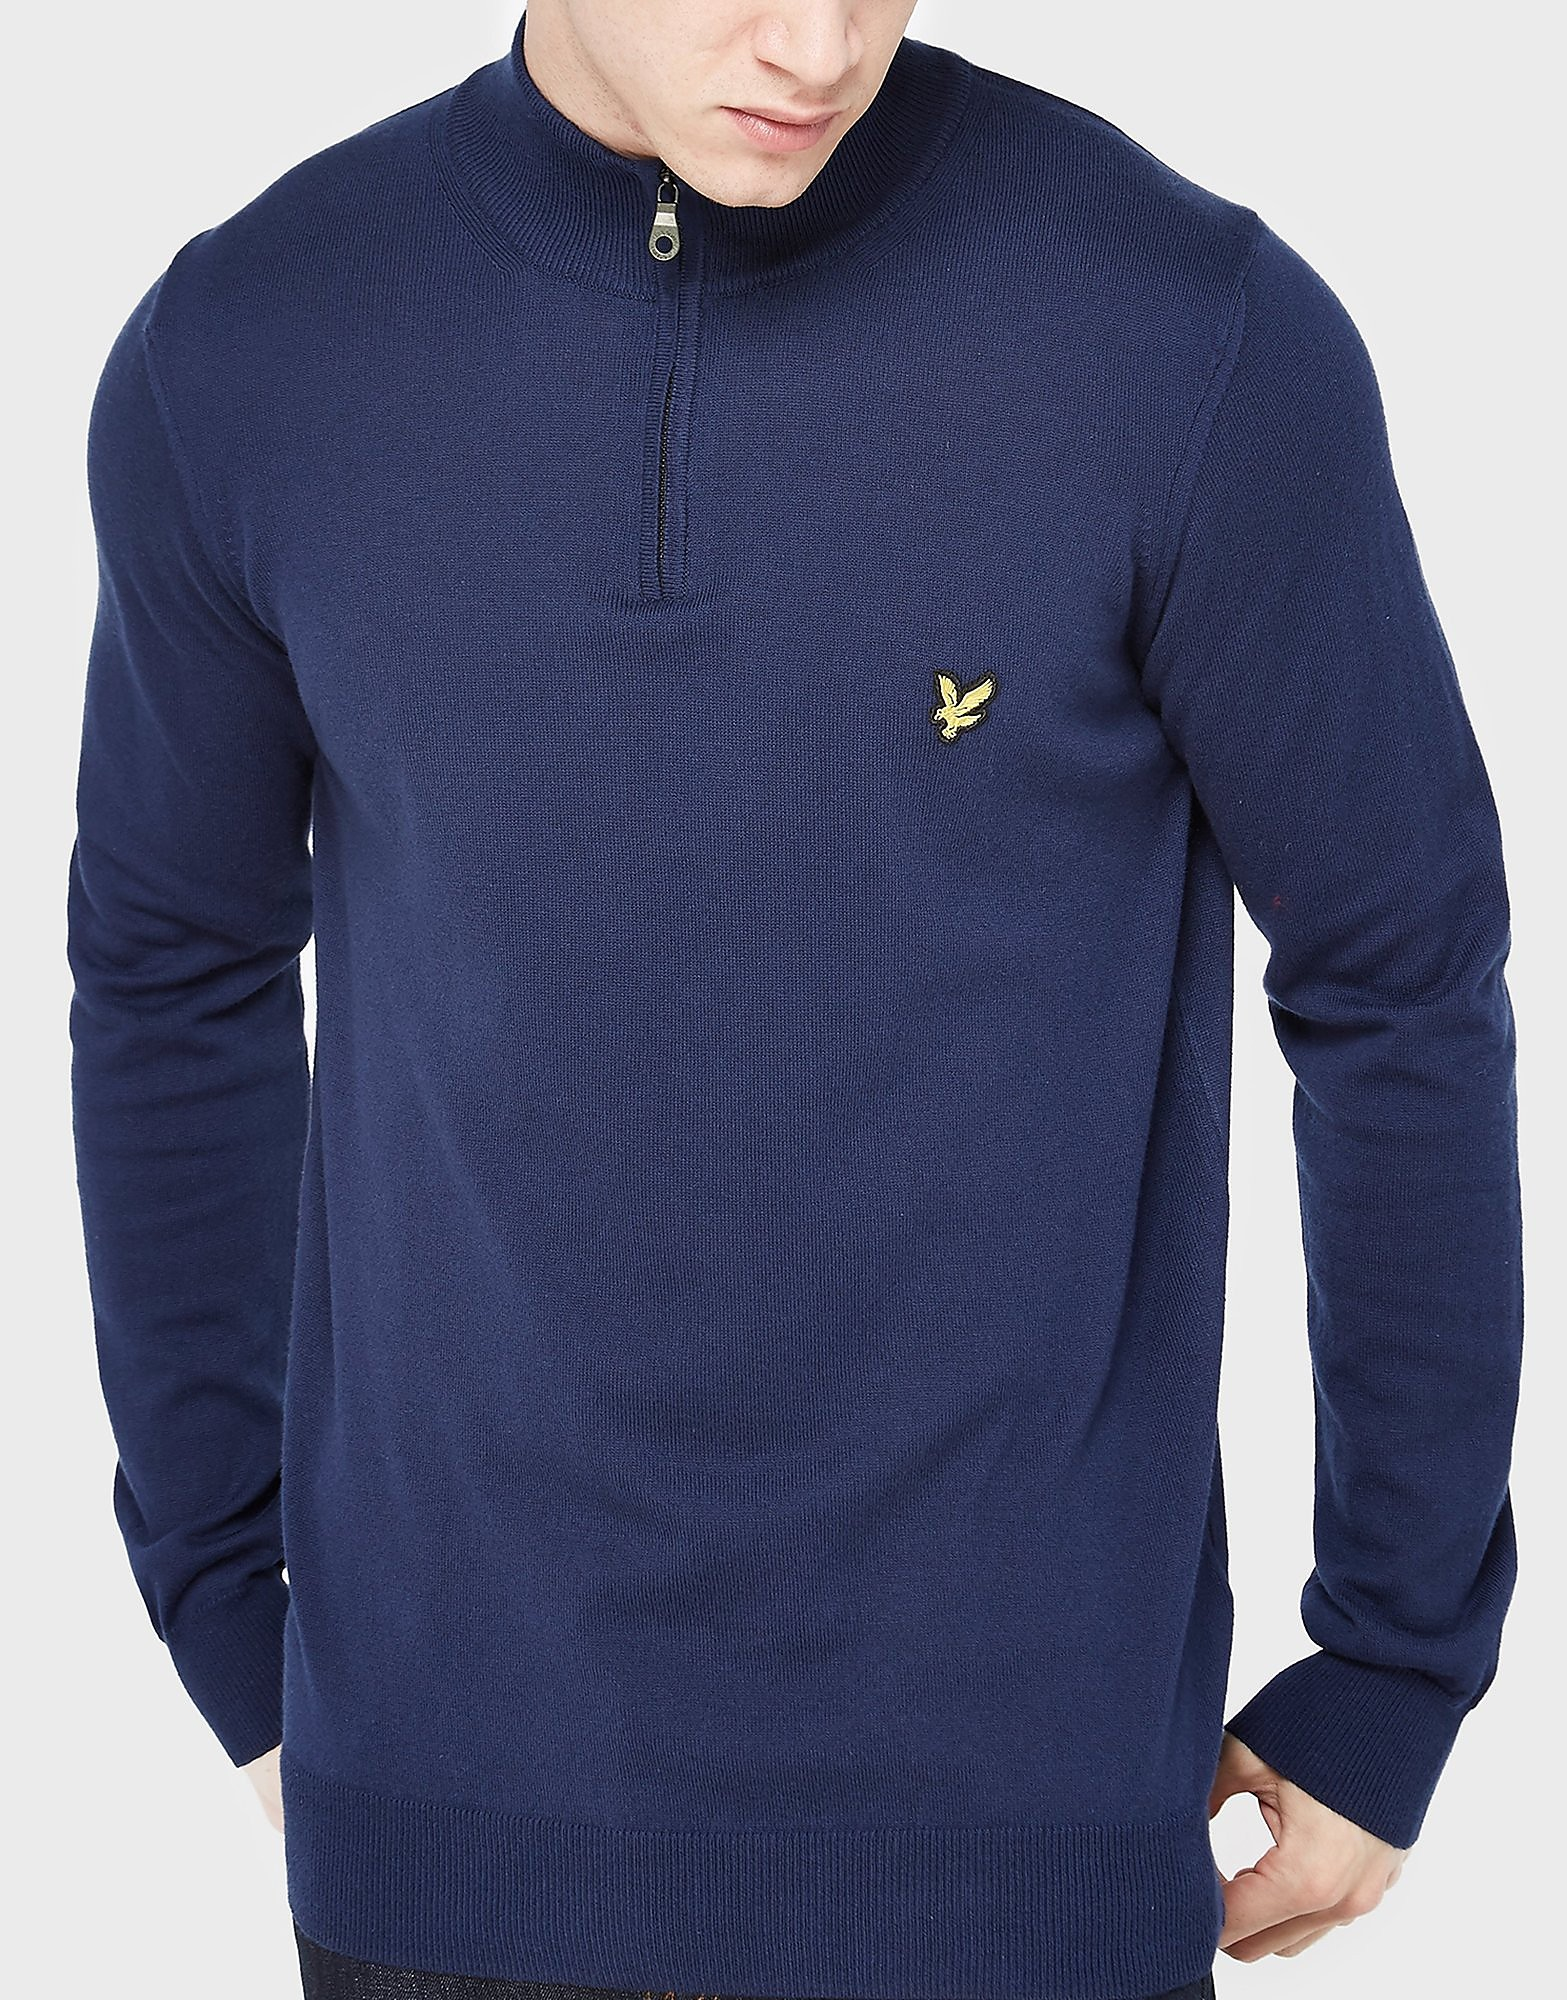 Lyle & Scott Merino Quarter-Zip Jumper